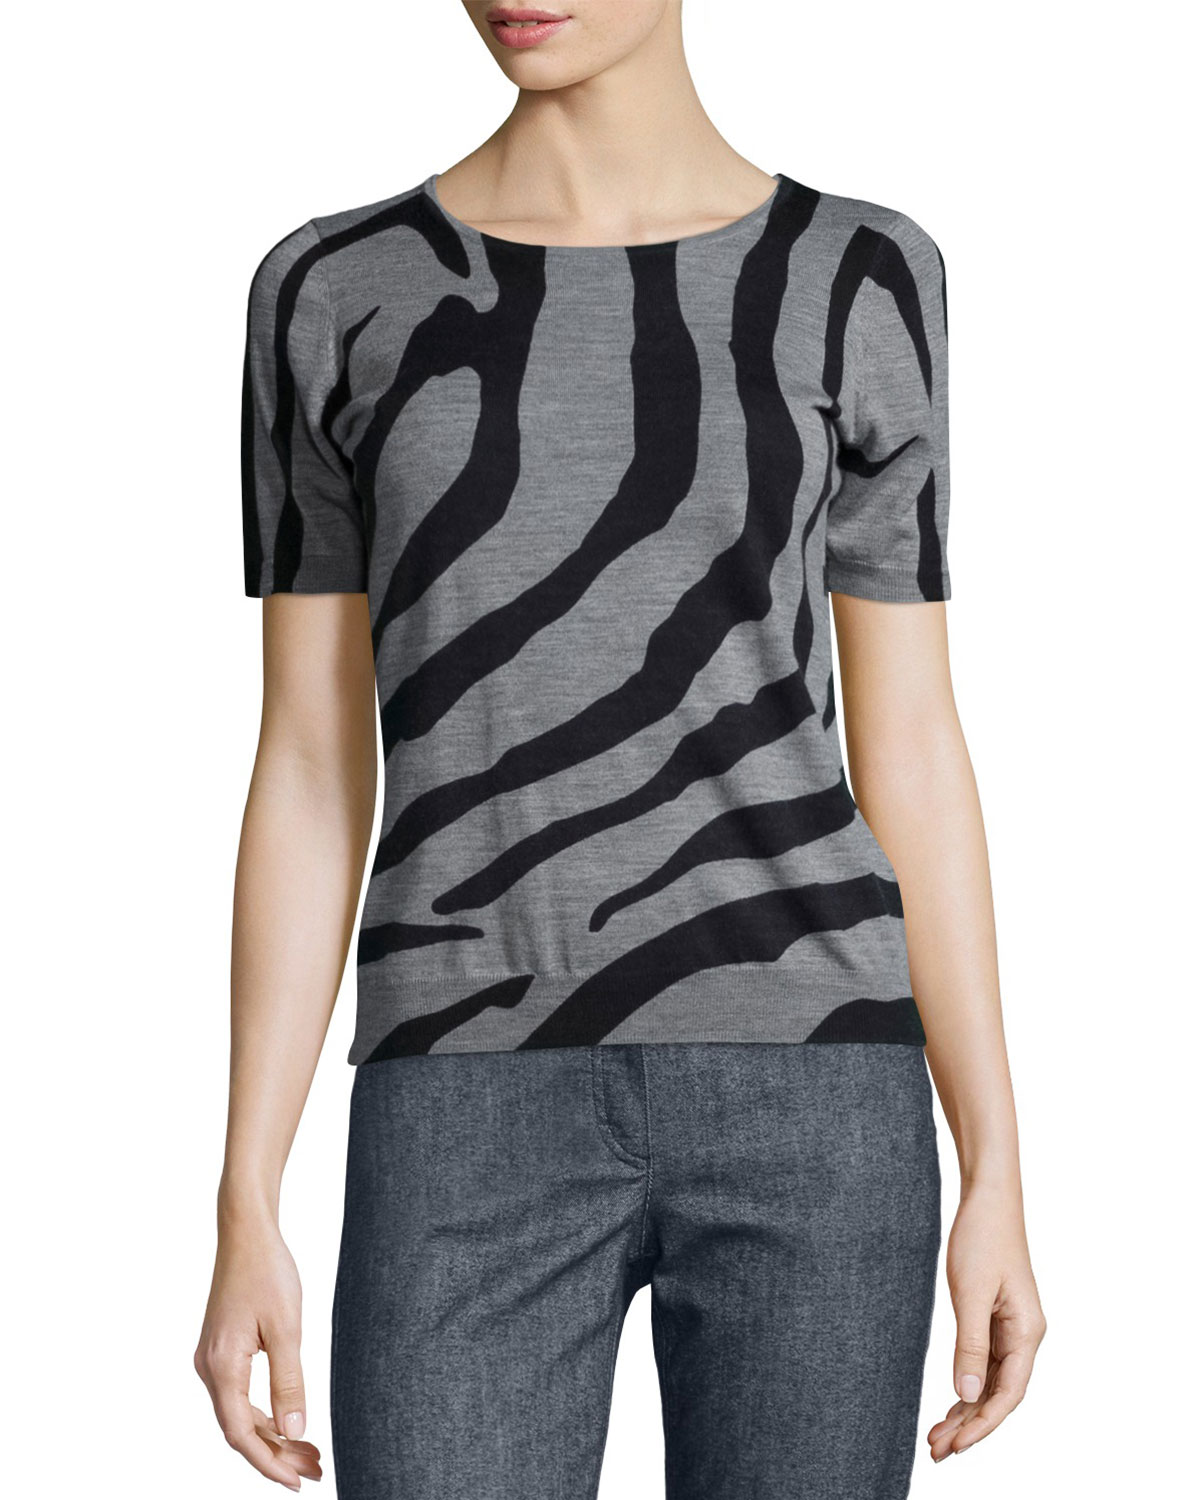 Zebra-Print Short-Sleeve Top, Multi